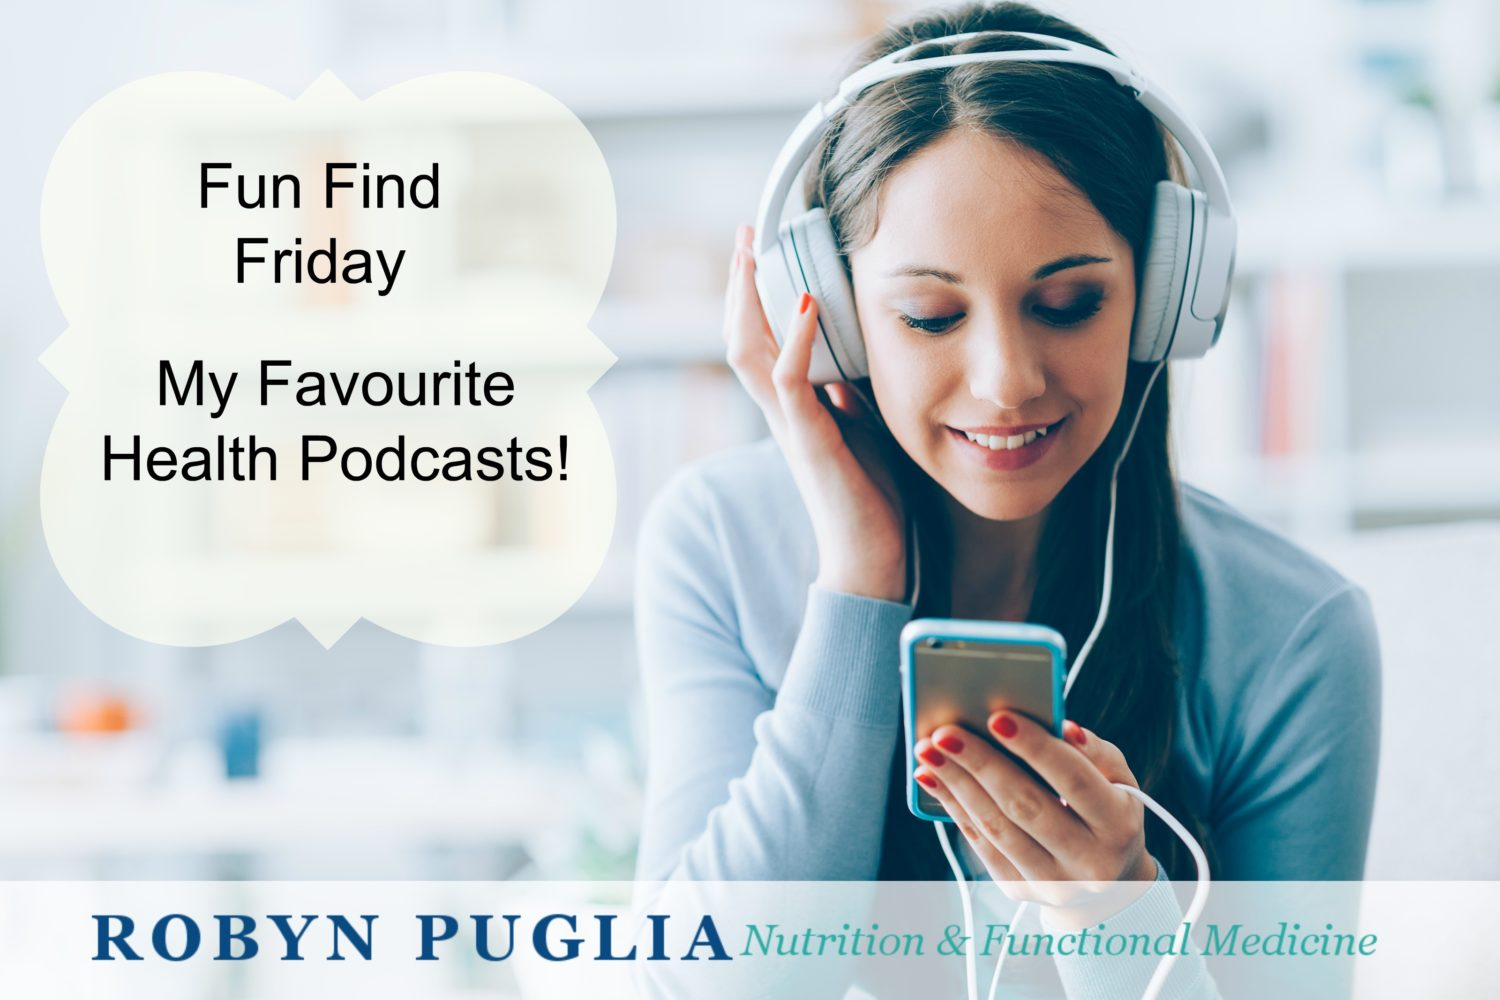 Fun Find Friday - My Favourite Healthy Podcasts